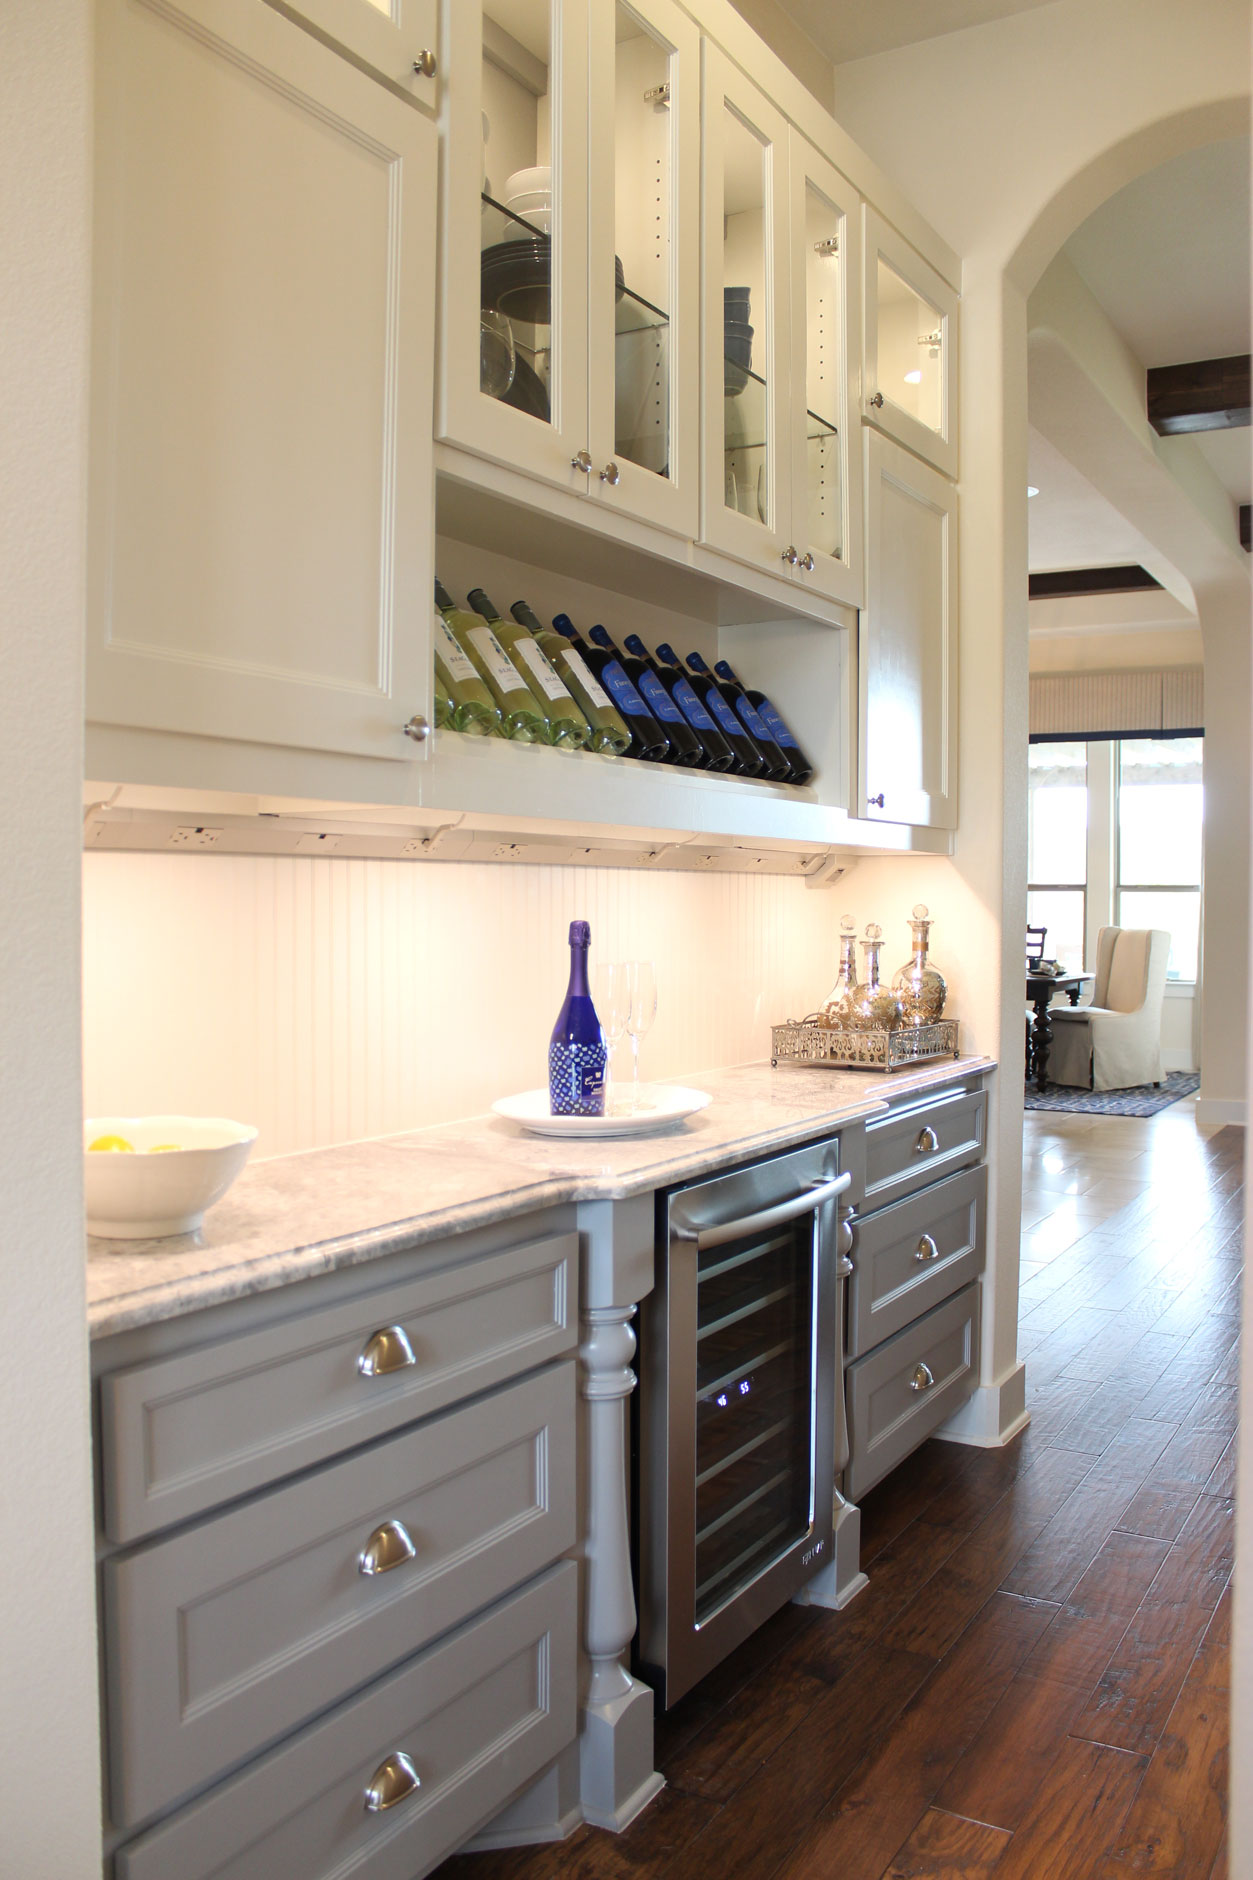 Burrows Cabinets' butler's pantry with Terrazzo door style in custom white and grey paint with half round posts, wine storage, glass panel doors, sweep blocks